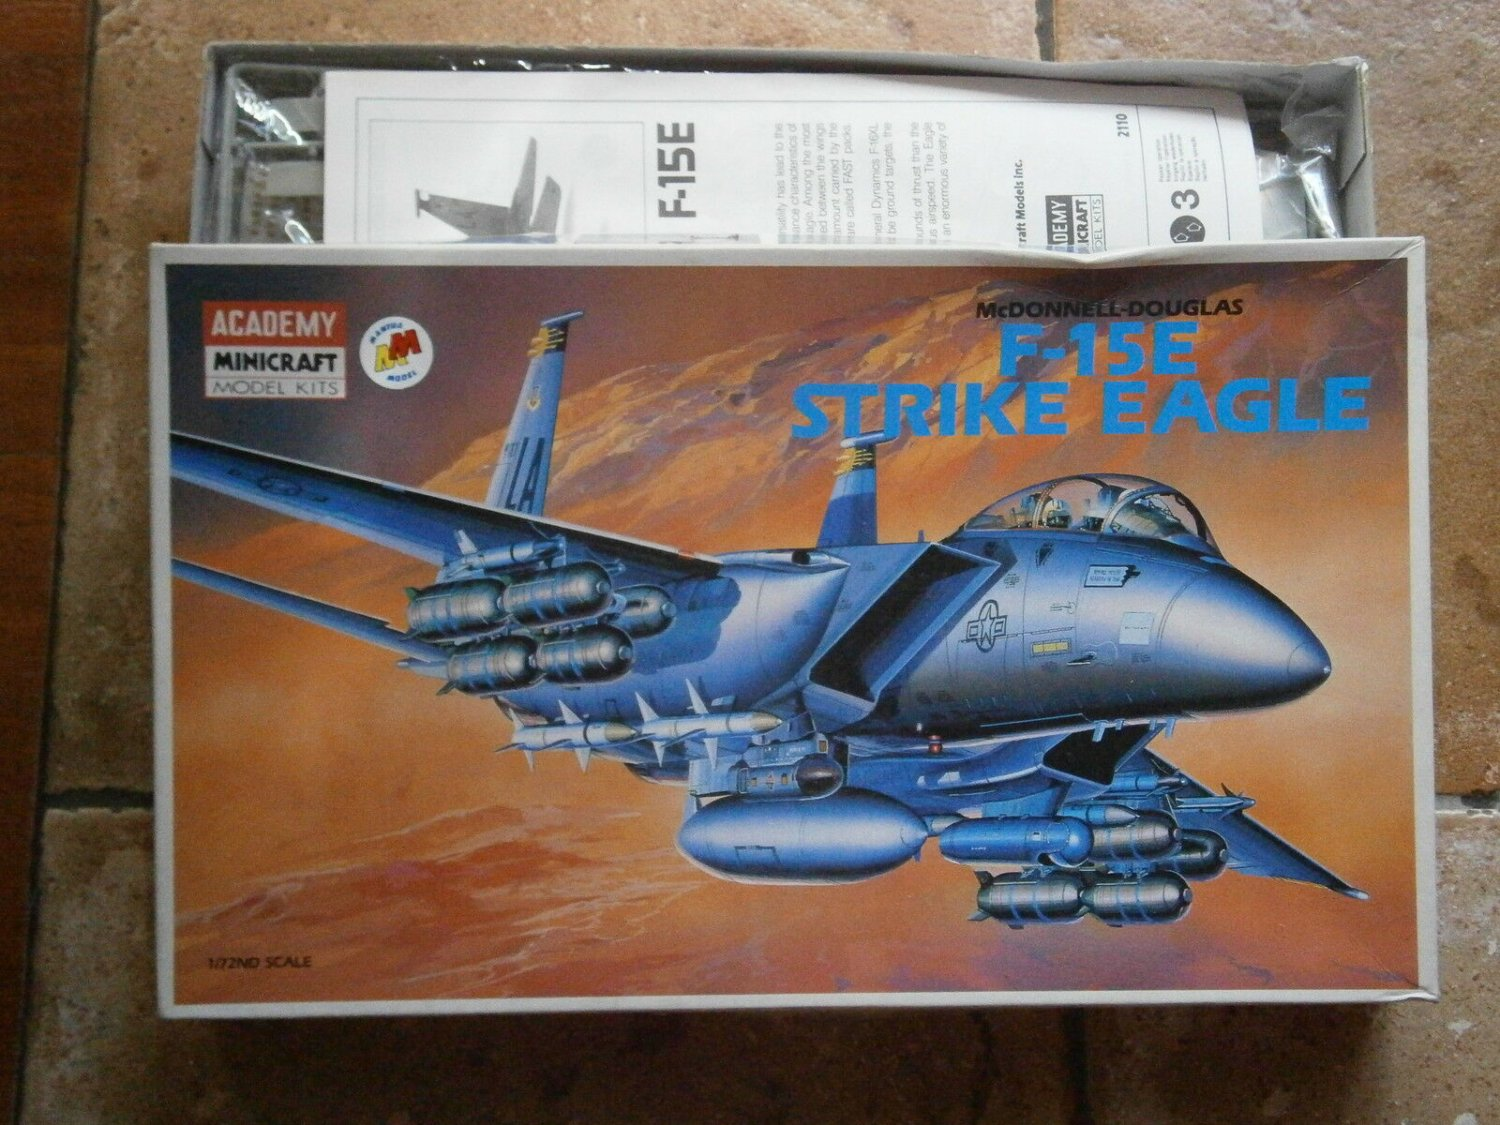 ACADEMY MINICRAFT Model KITS 2110 F-15E Strike Eagle Mc Donnel Douglas Original set 1991